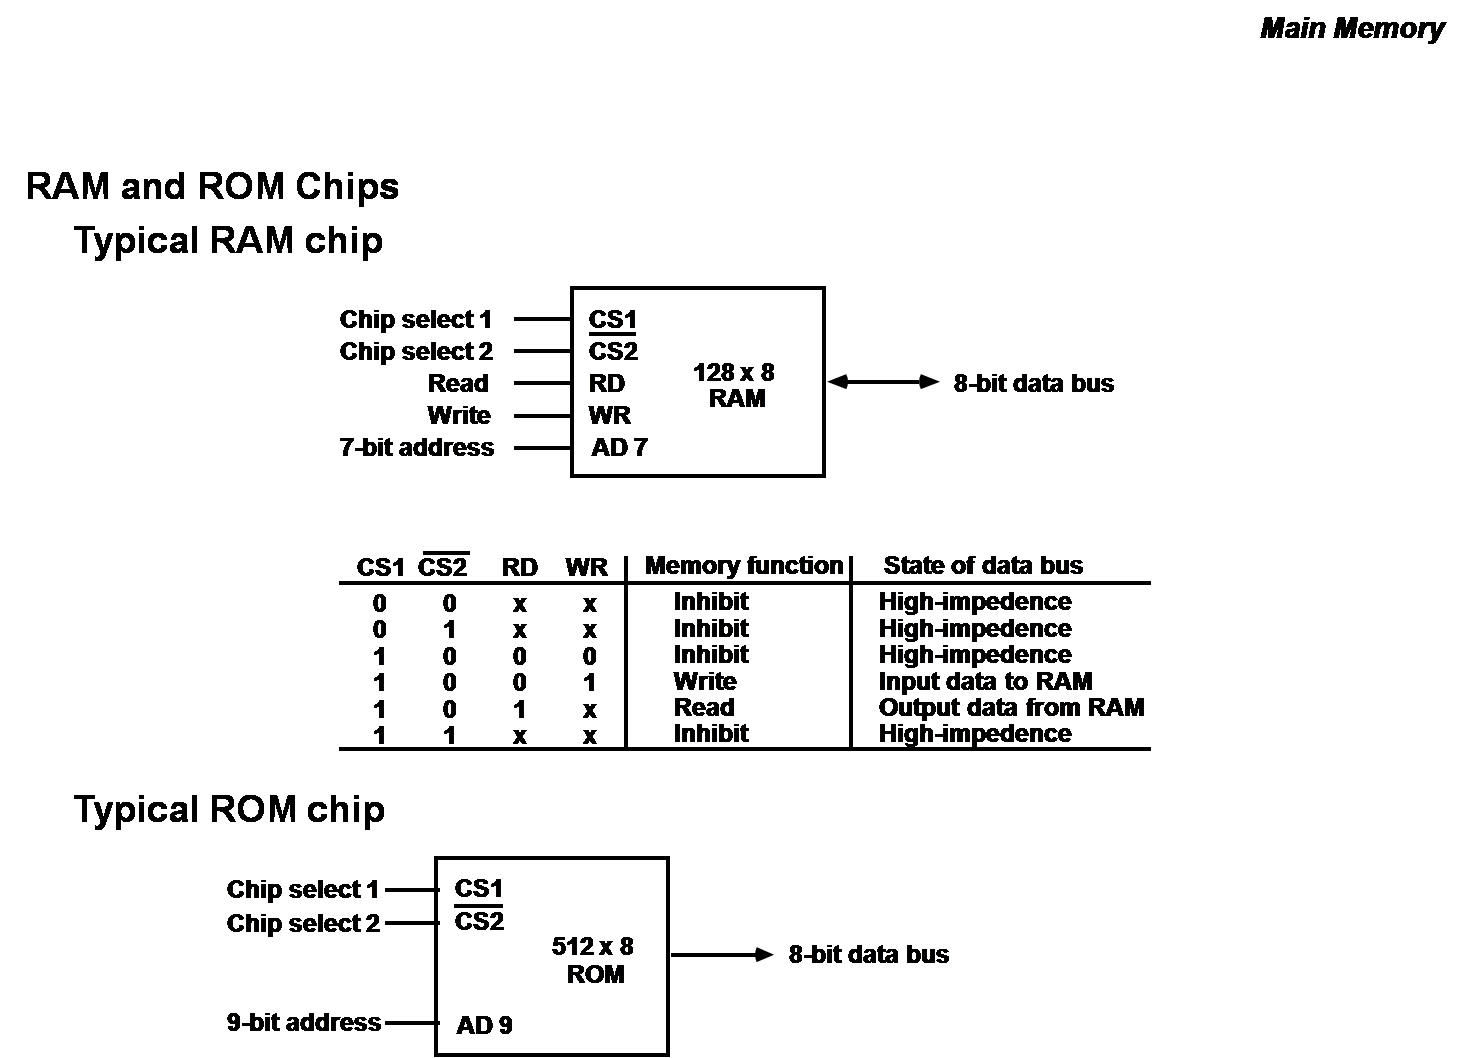 medium resolution of ram chip diagram wire management wiring diagram memory organisation computer organization and architecture block diagram